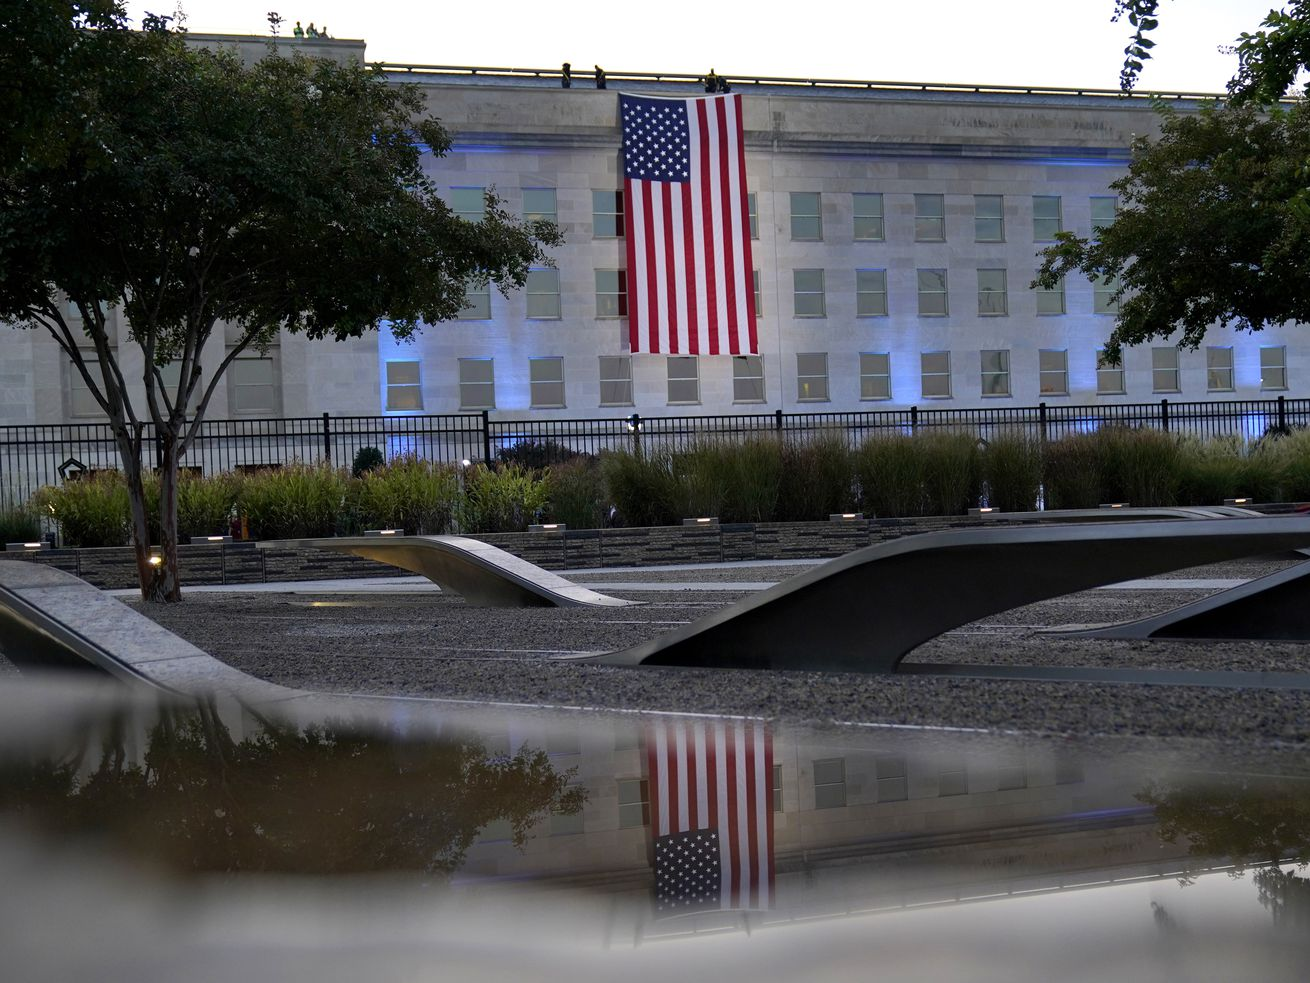 An American flag is unfurled at the Pentagon in Washington, Saturday, Sept. 11, 2021, at sunrise on the morning of the 20th anniversary of the terrorist attacks. The American flag is draped over the site of impact at the Pentagon. In the foreground, the National 9/11 Pentagon Memorial, opened in 2008 adjacent to the site, commemorates the lives lost at the Pentagon and onboard American Airlines Flight 77..